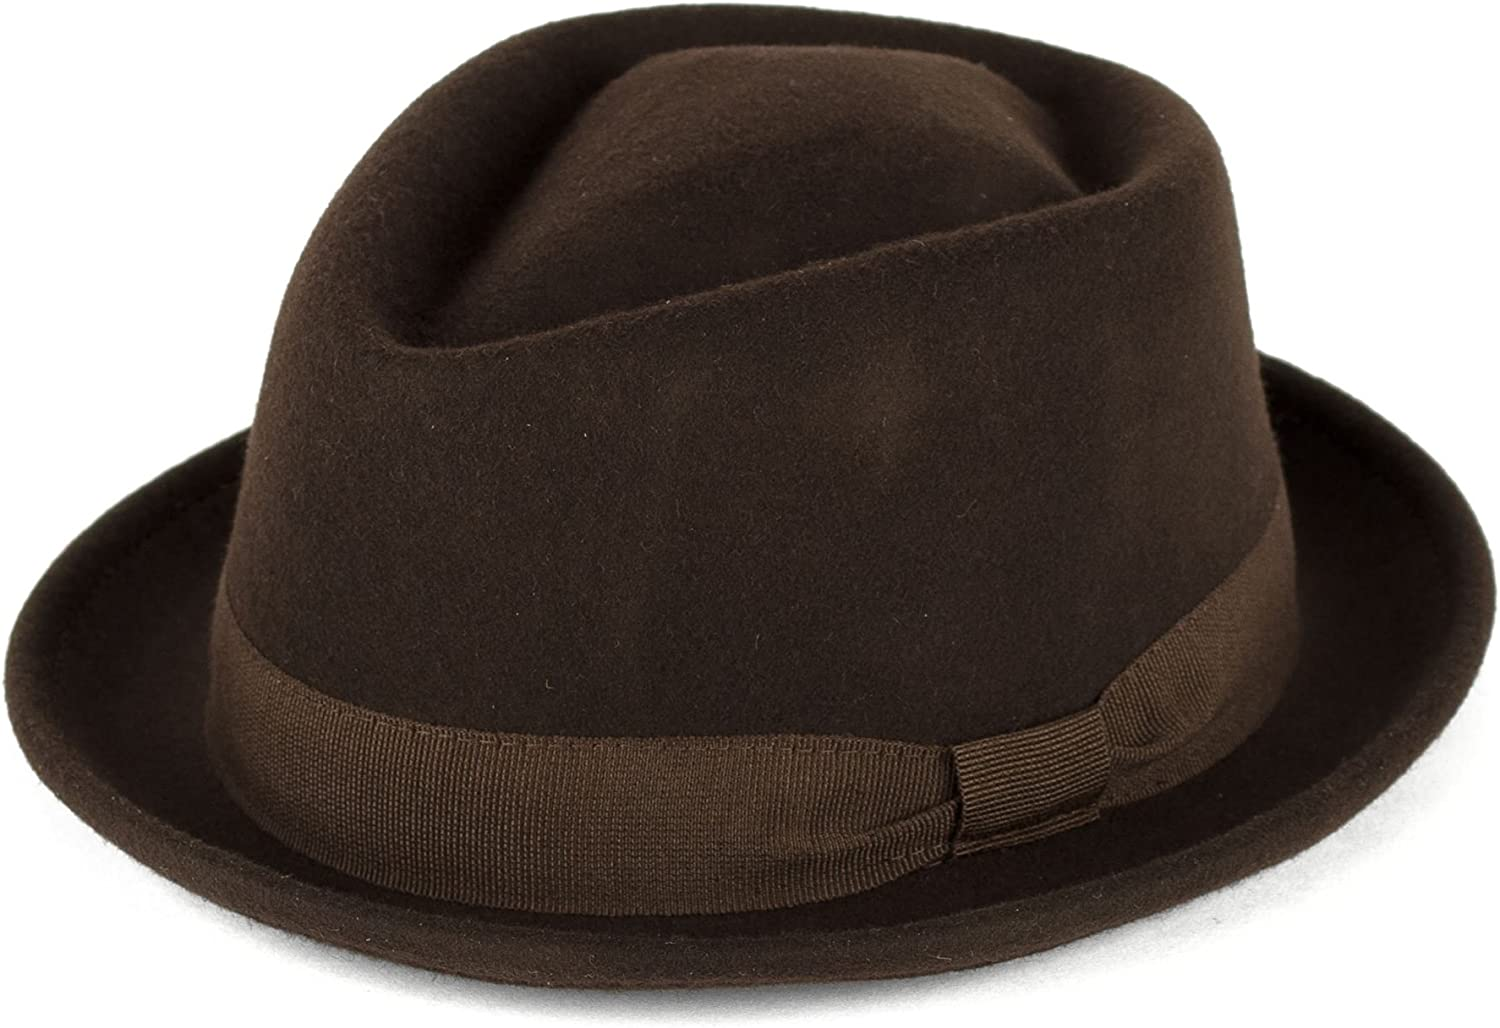 d2d Unisex 100/% Fine Wool Handmade in Italy Unisex Colonial Style Fedora Hat